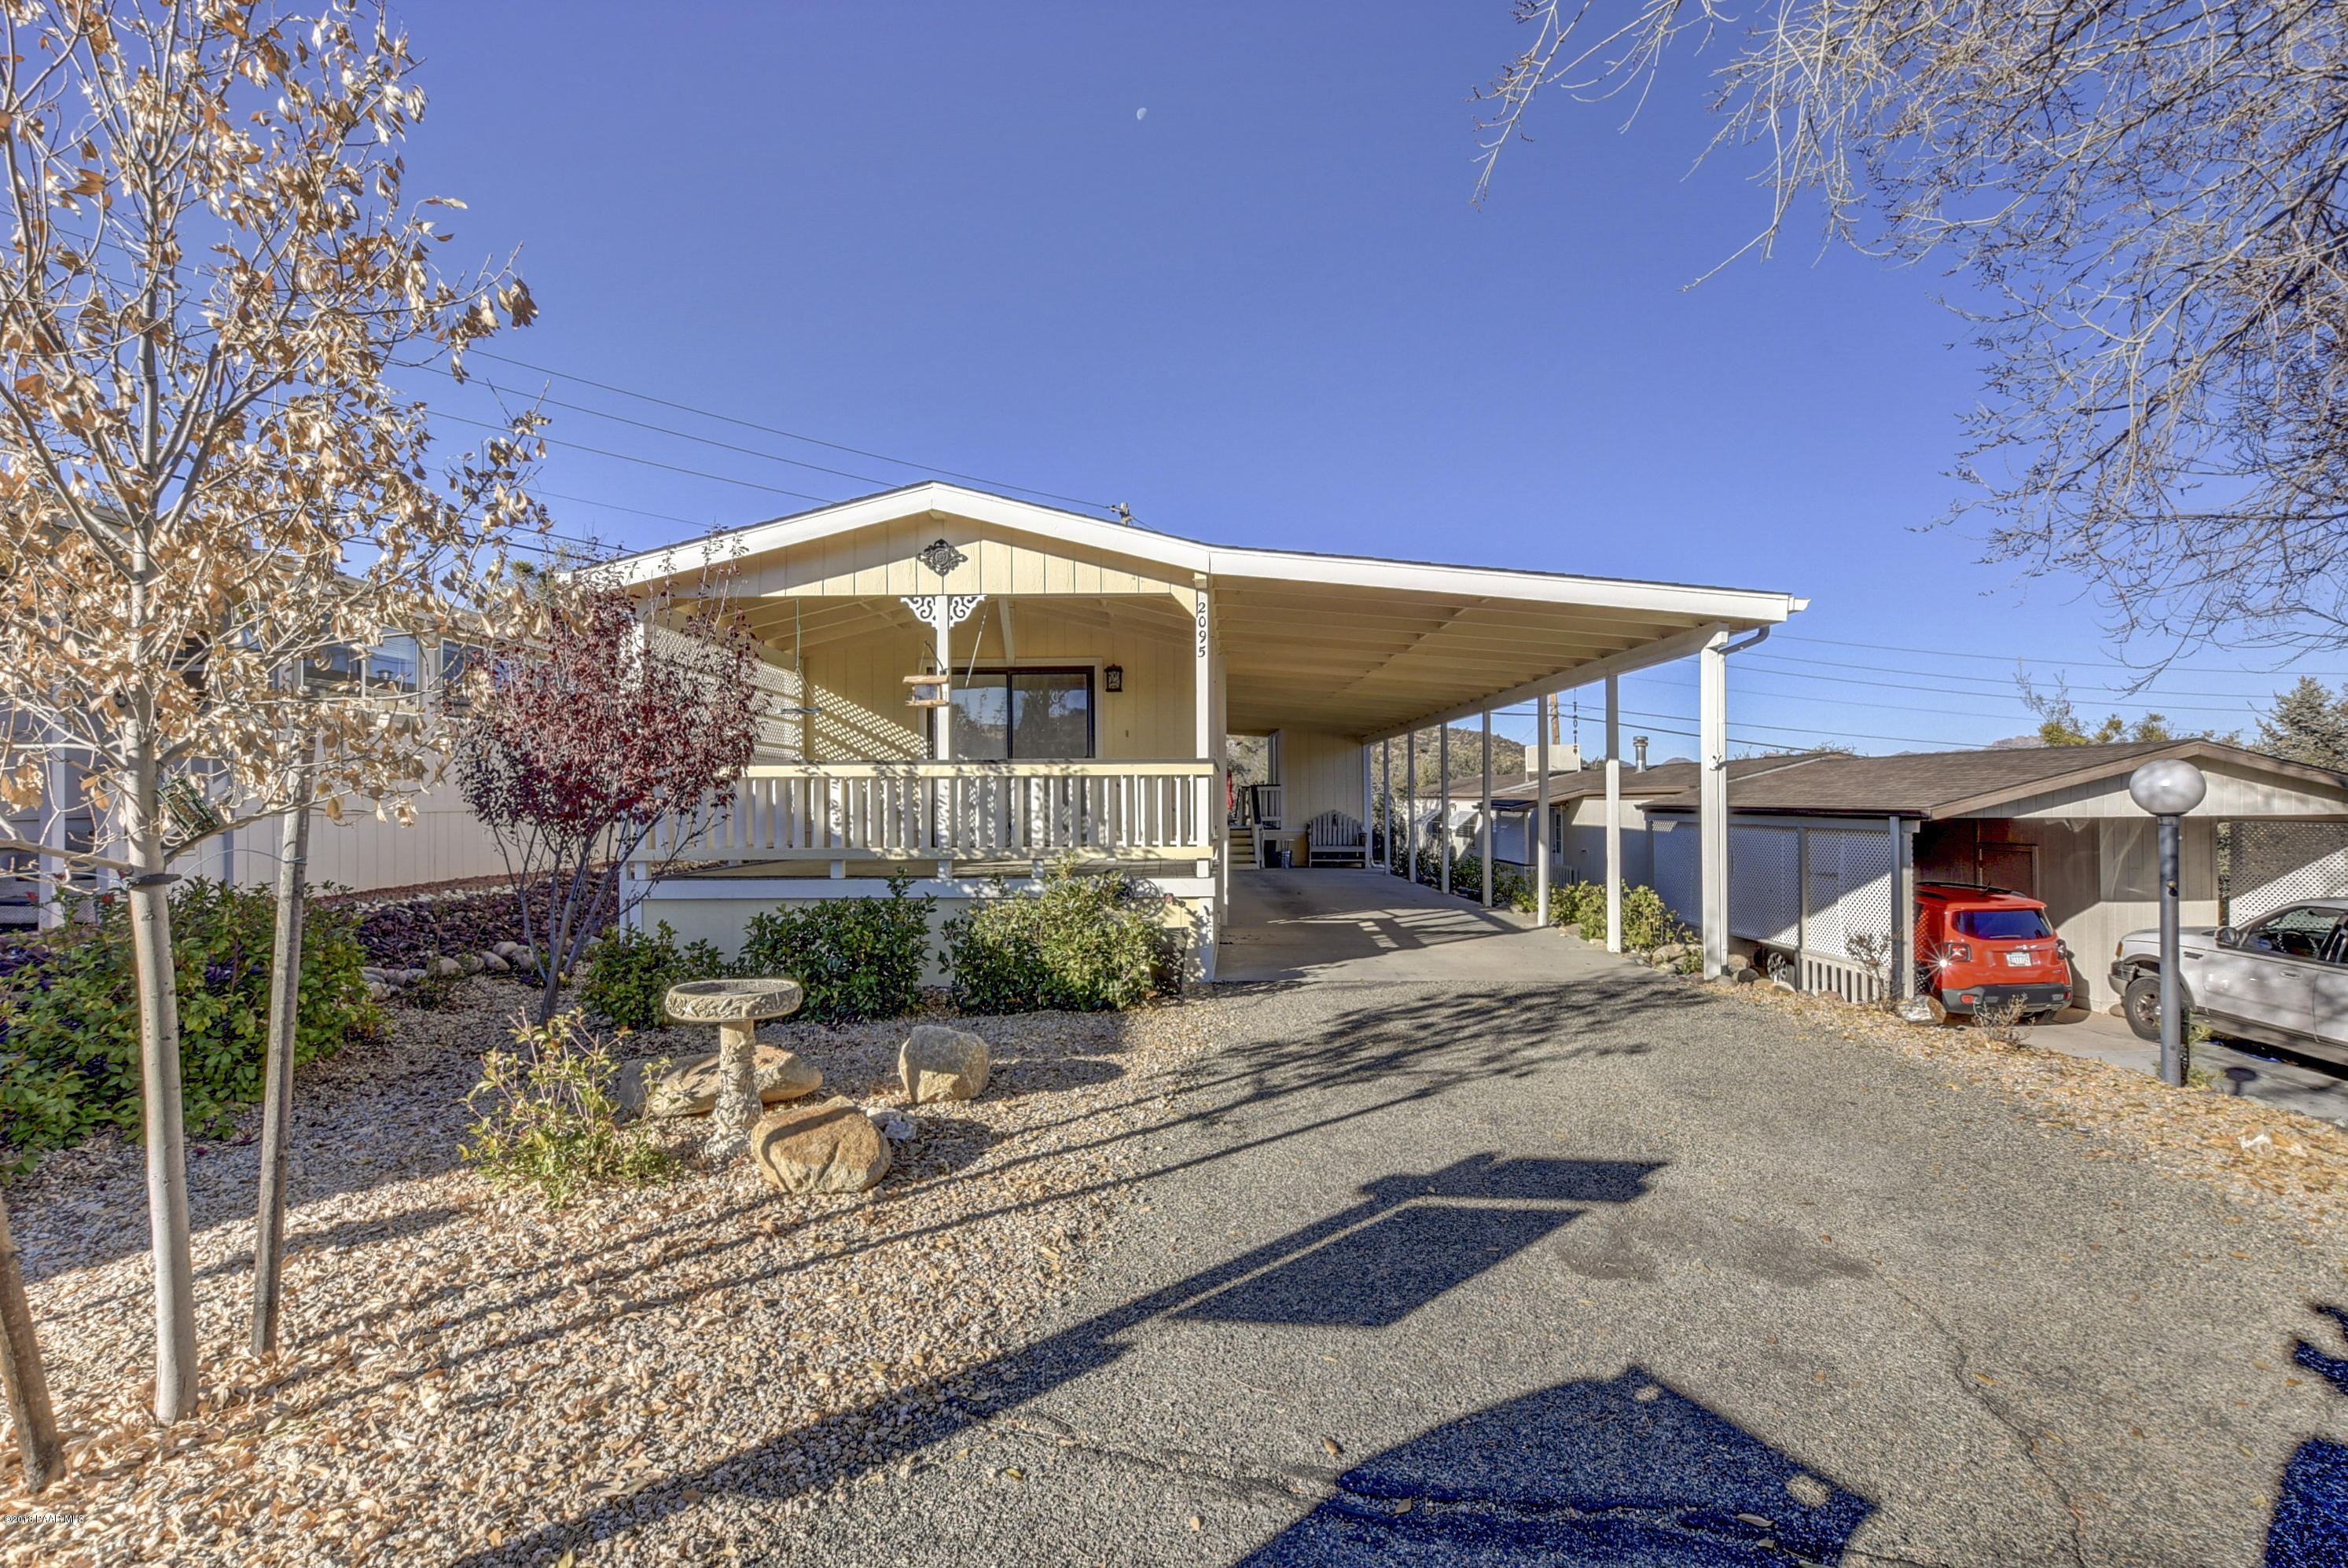 Photo of 2095 Prescott Canyon, Prescott, AZ 86301